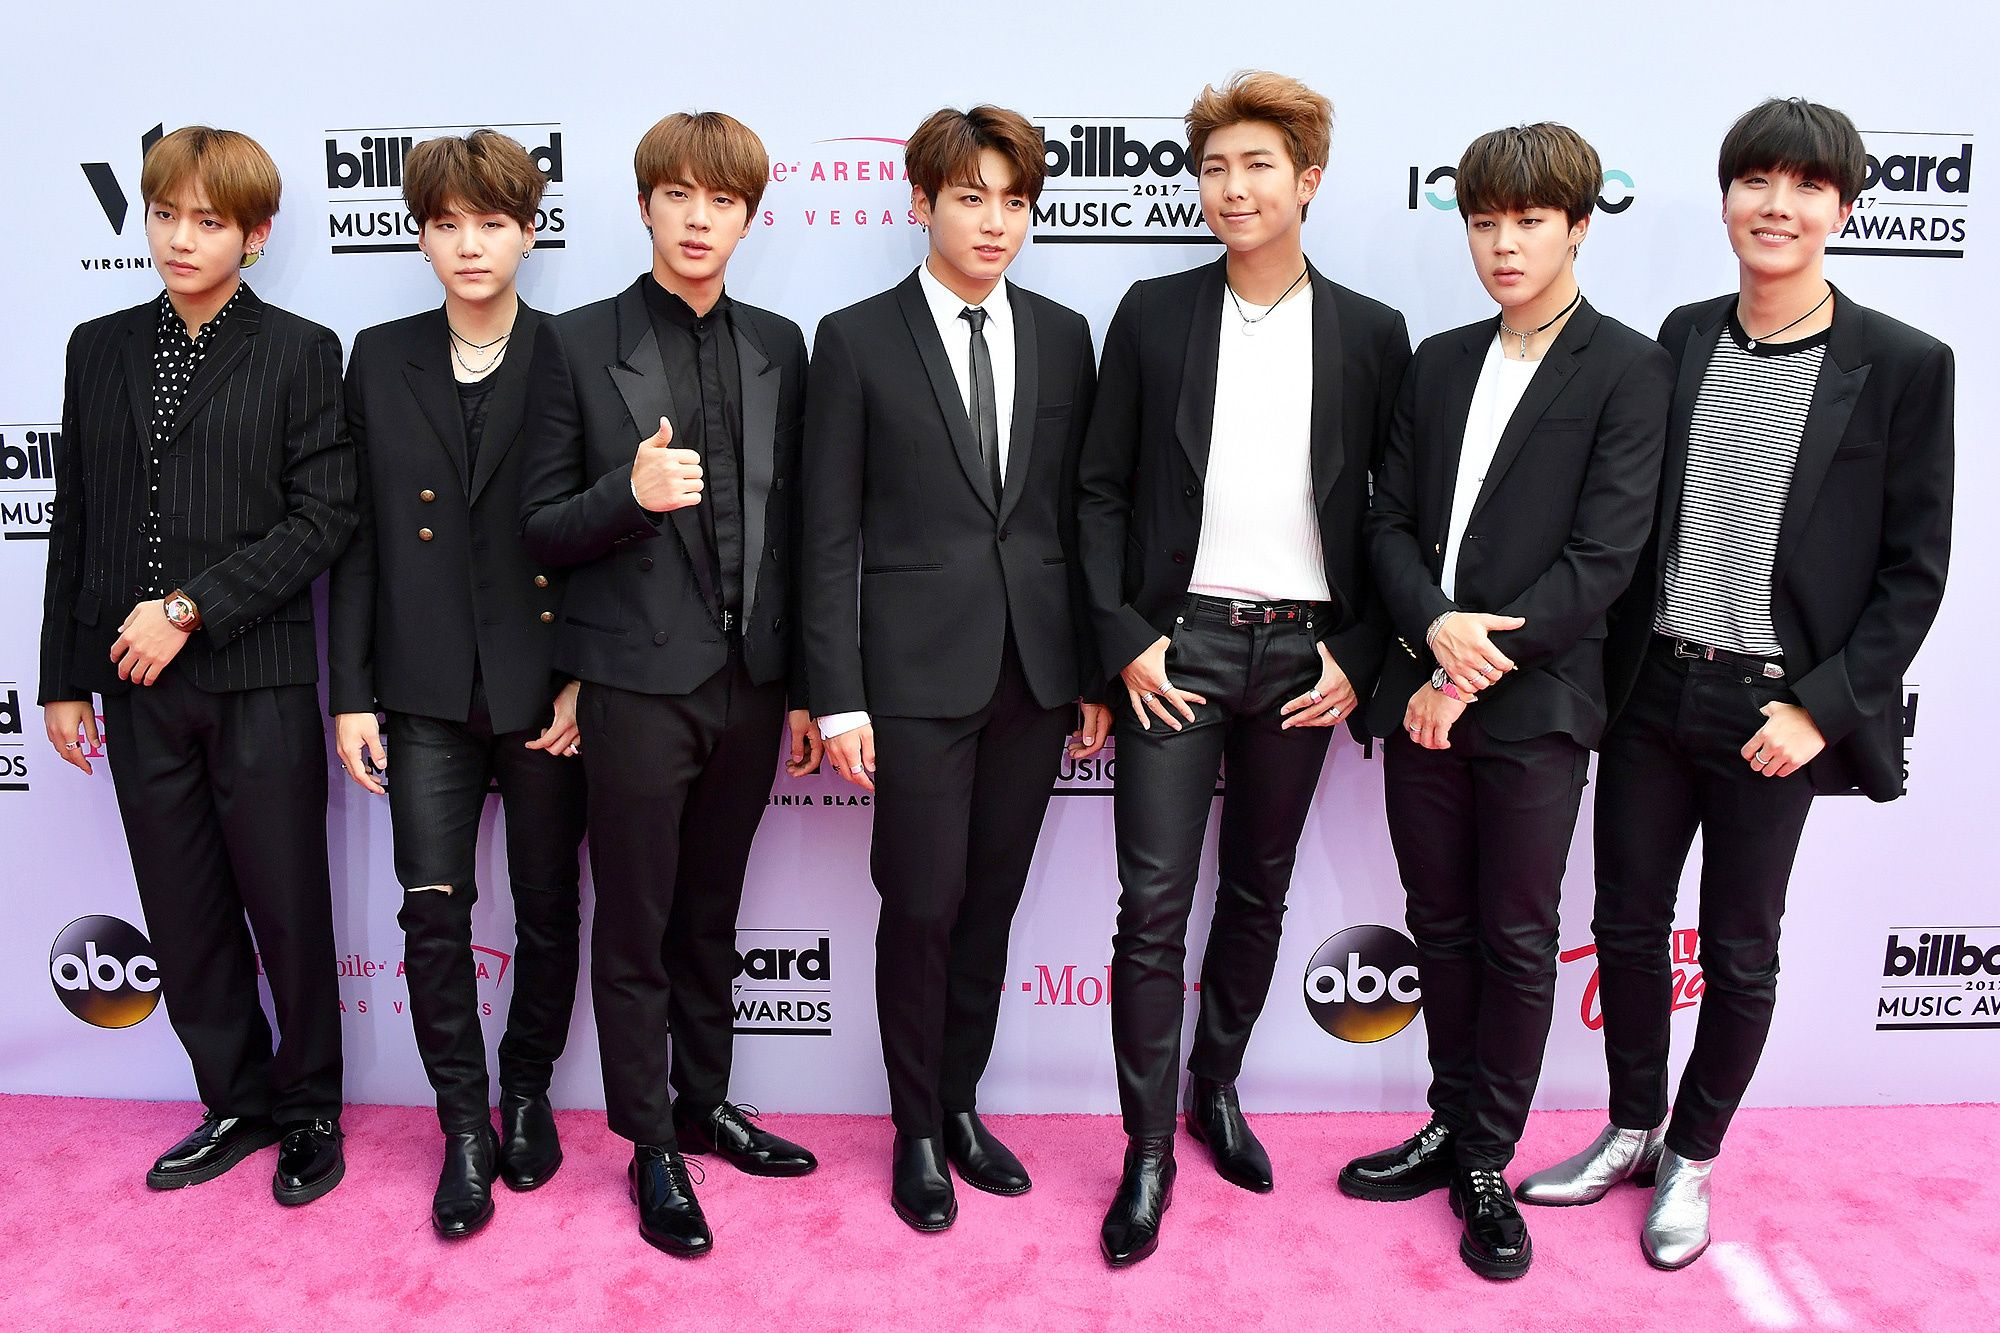 Bts 5 Things To Know About The Korean Pop Boy Band Making Their Performance Debut At The American Music Awards In 2020 Bts Billboard Music Awards Bts Billboard Billboard Music Awards 2017